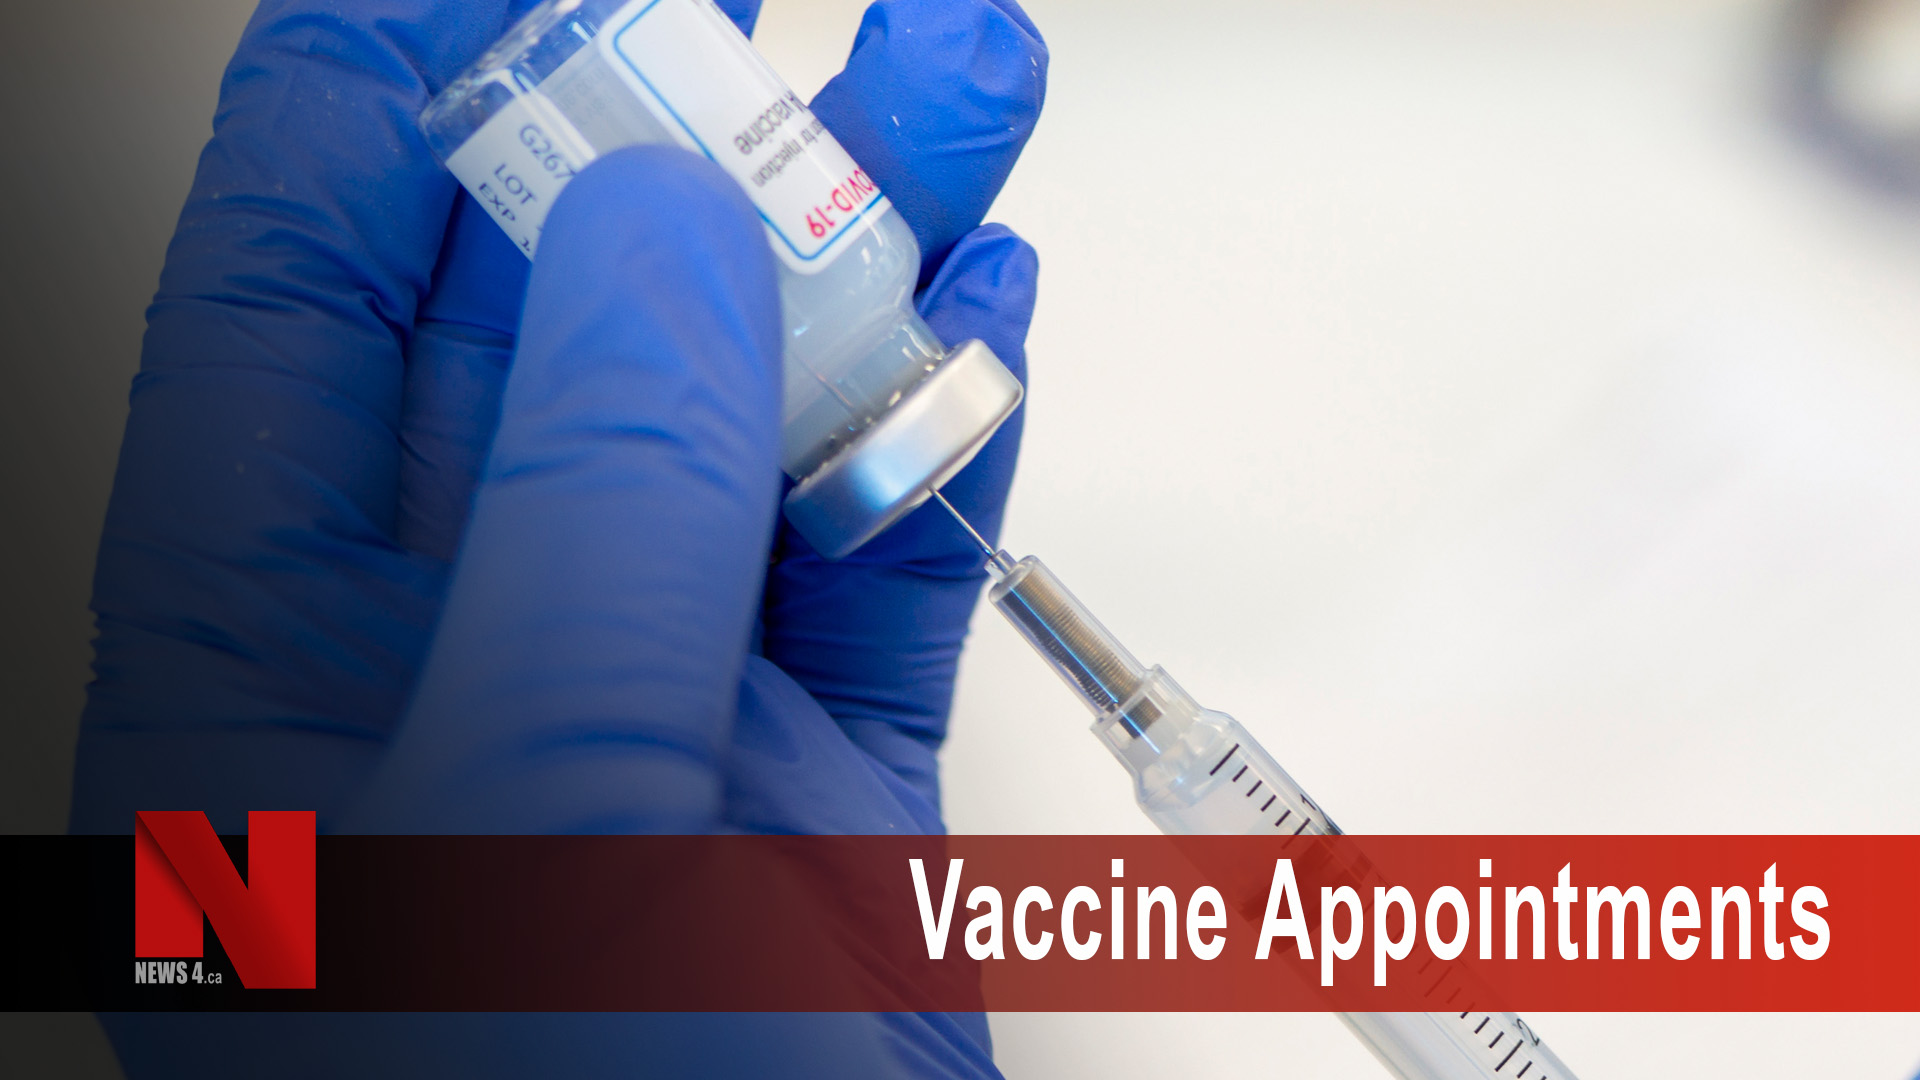 Vaccine Appointments